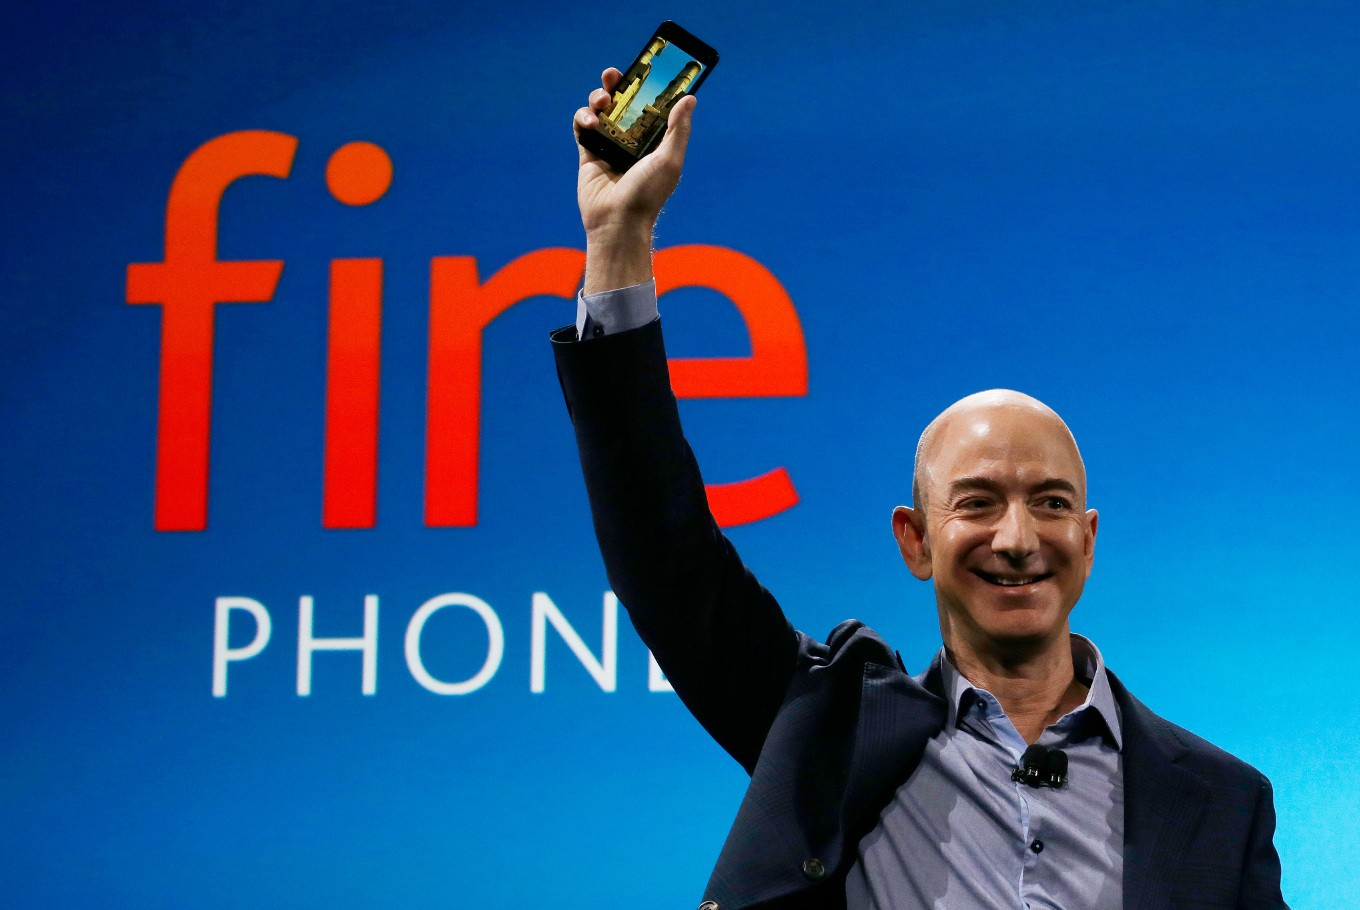 Jeff Bezos is just $5 billion away from being the world's richest person